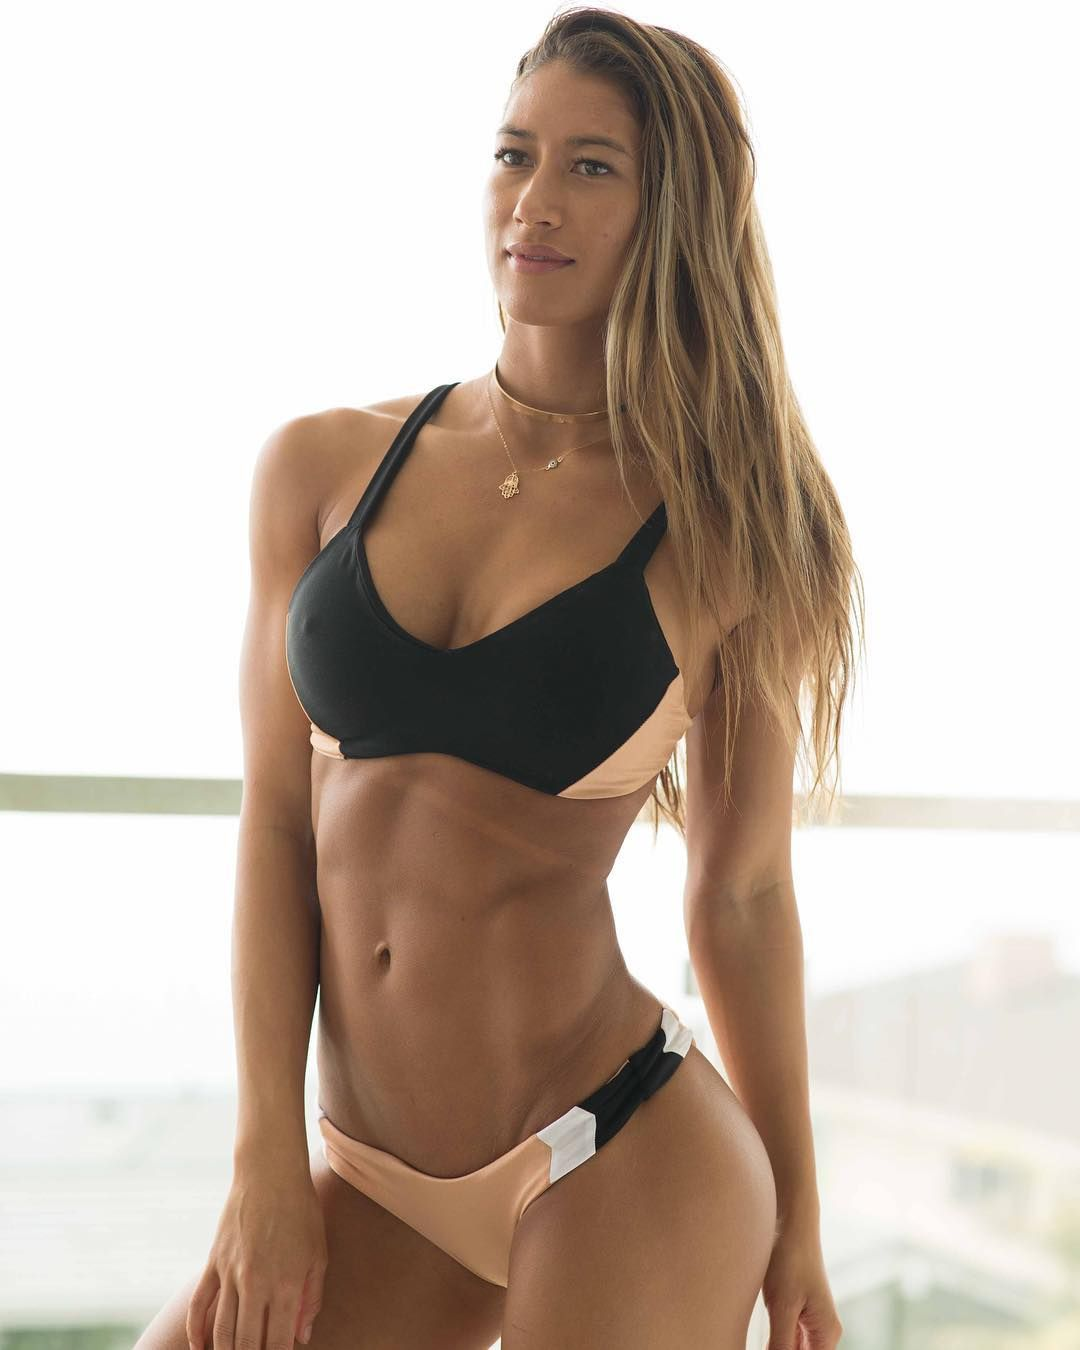 Bikini Karina Elle nudes (14 foto and video), Ass, Leaked, Feet, swimsuit 2020